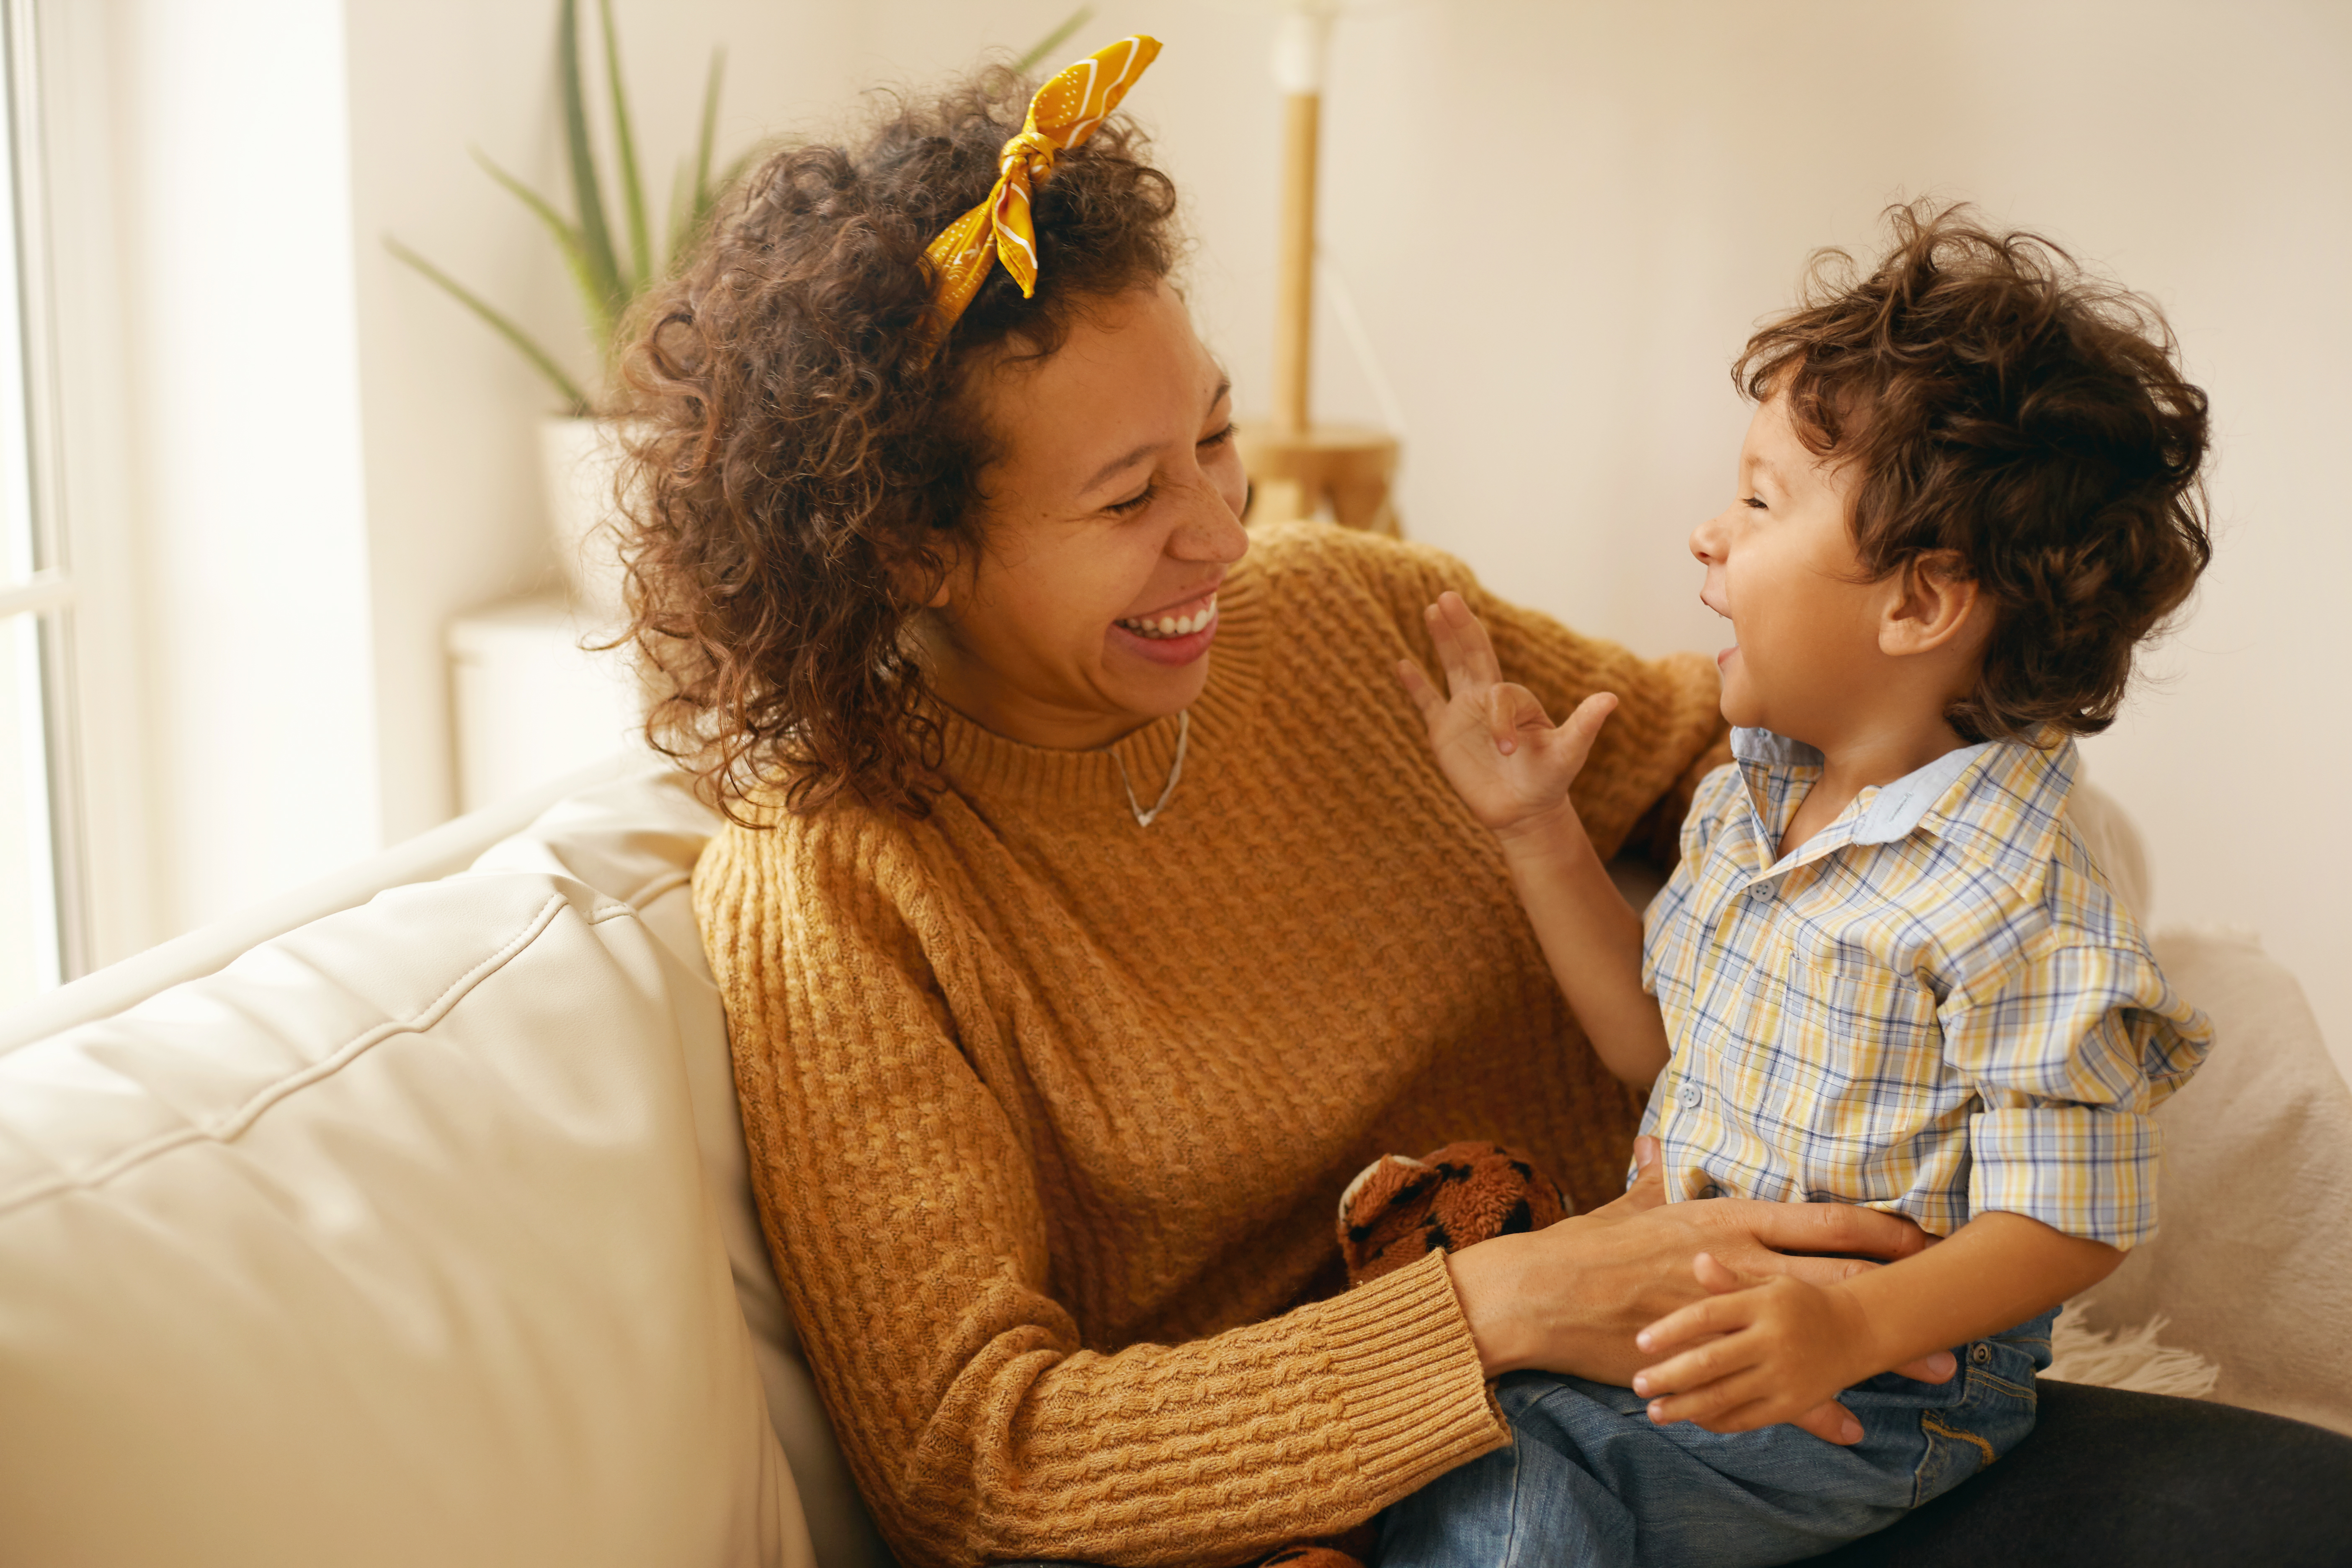 indoor-shot-of-happy-young-hispanic-woman-with-brown-wavy-hair-relaxing-at-home-embracing-her-adorable-toddler-son-cheerful-mother-bonding-with-infant-son-sitting-on-sofa-in-living-room-laughing